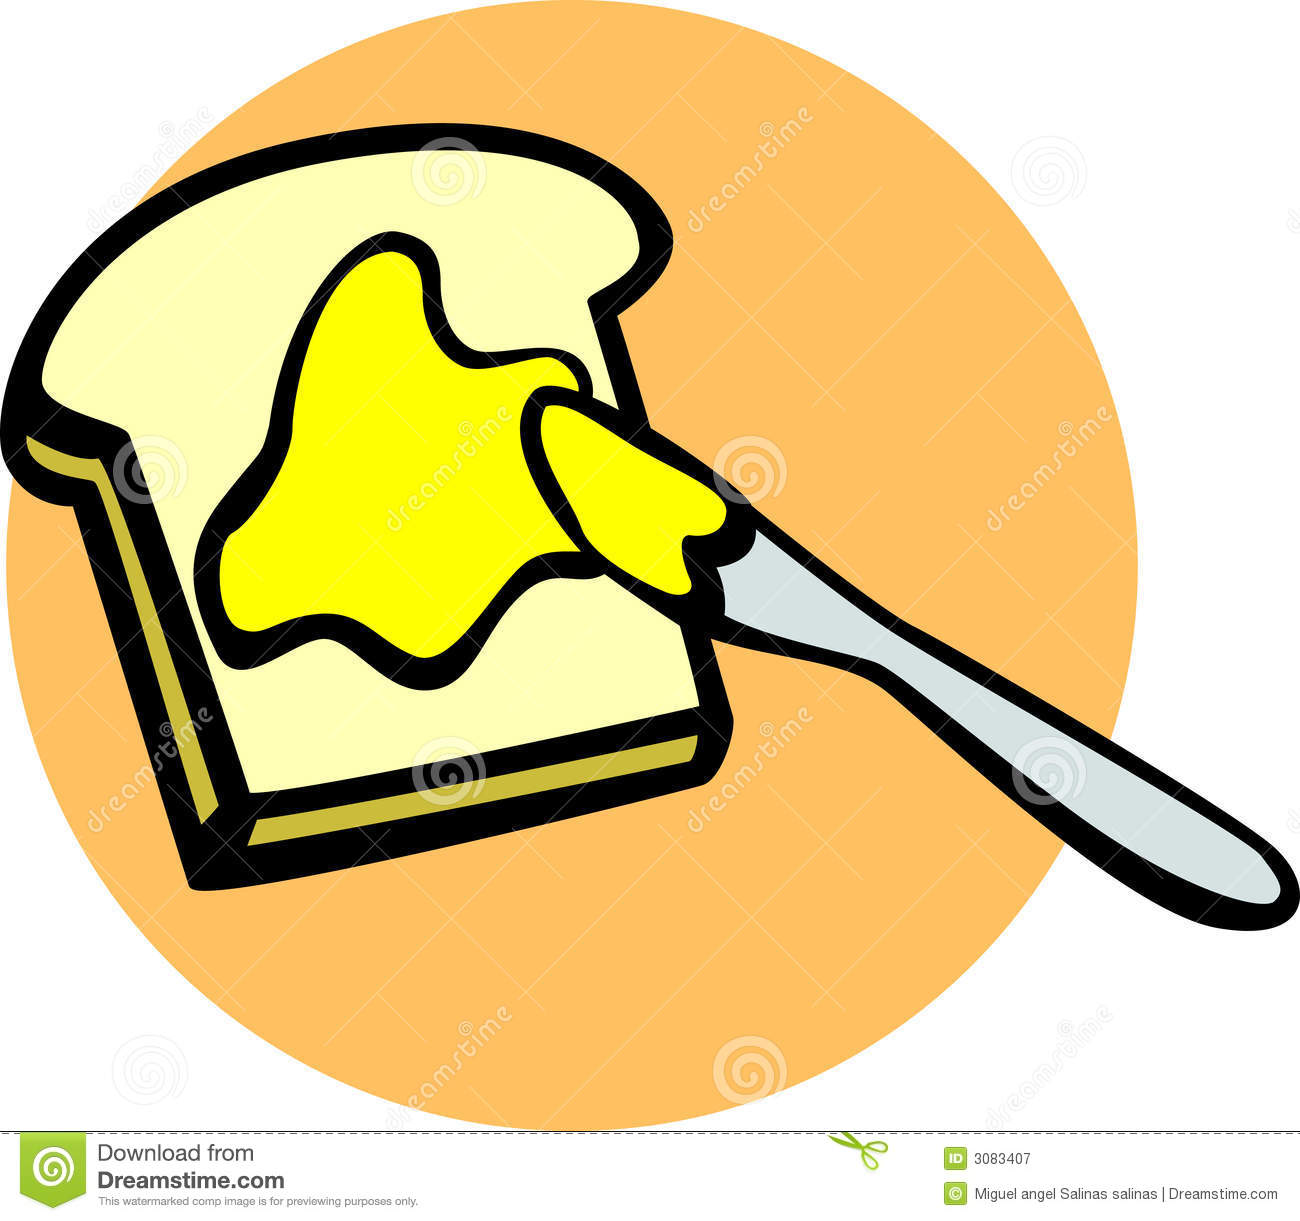 Toast With Butter And Knife Vector Illustration Royalty Free Stock